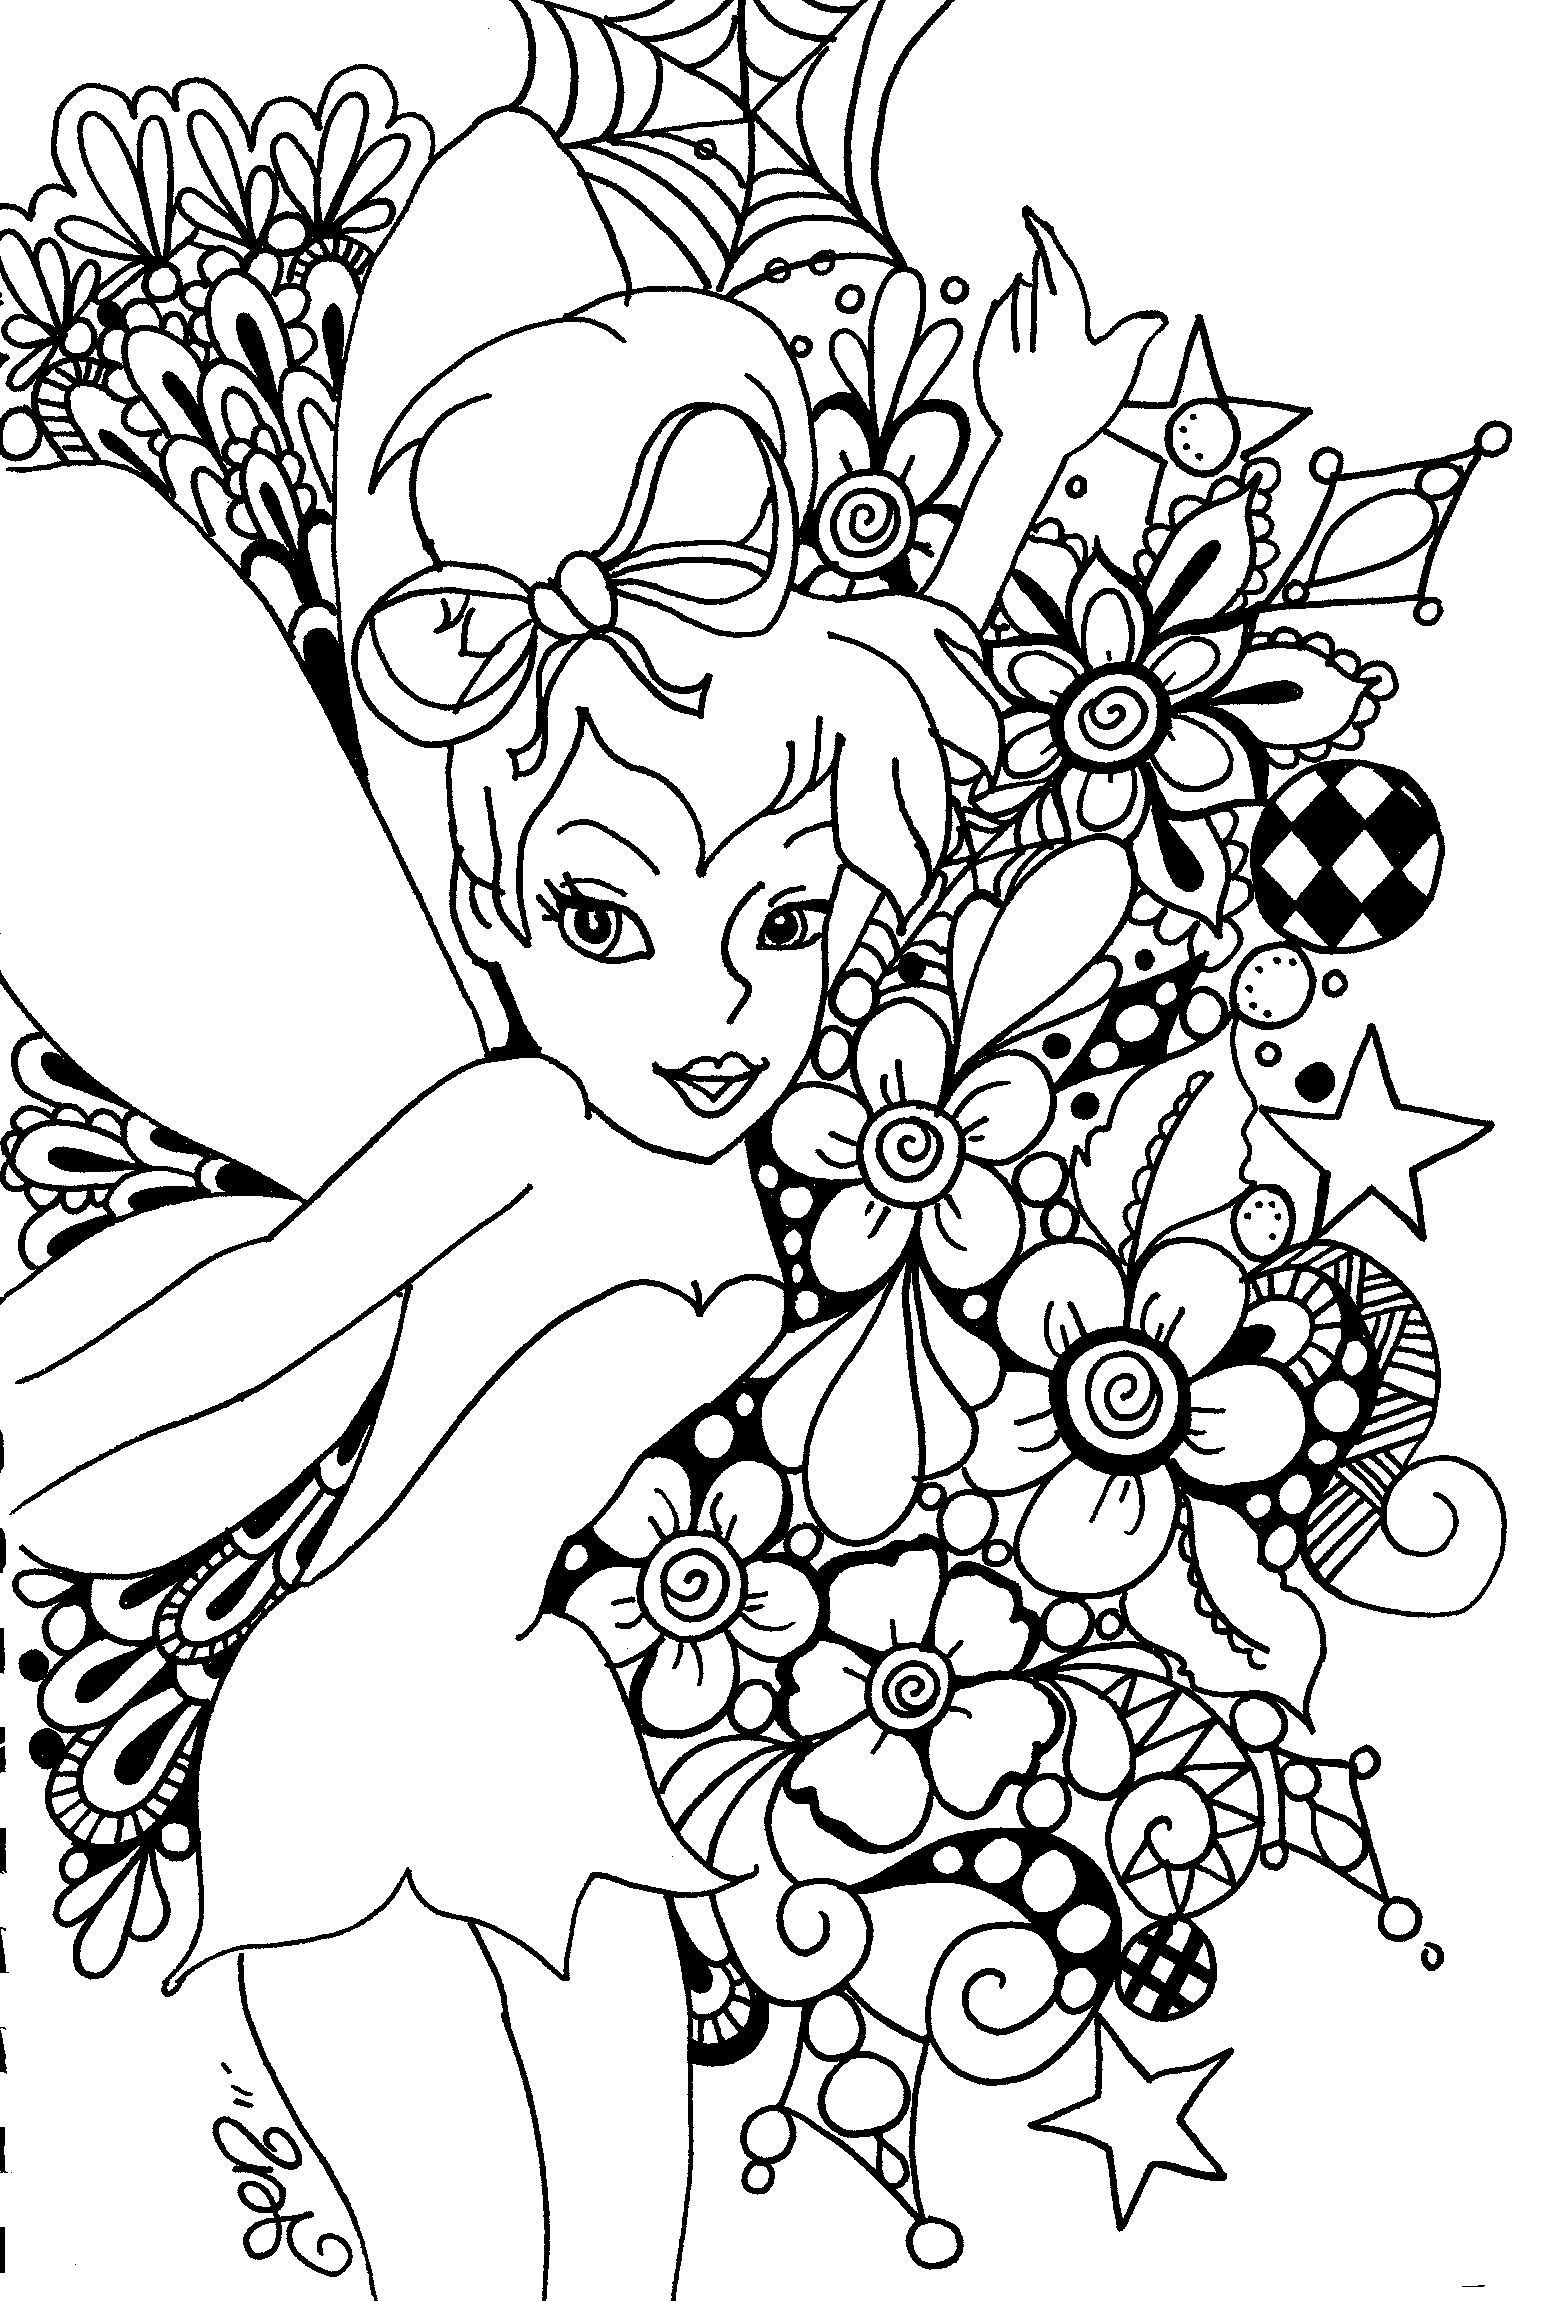 - Disney Coloring Pages For Adults Online (With Images) Tinkerbell